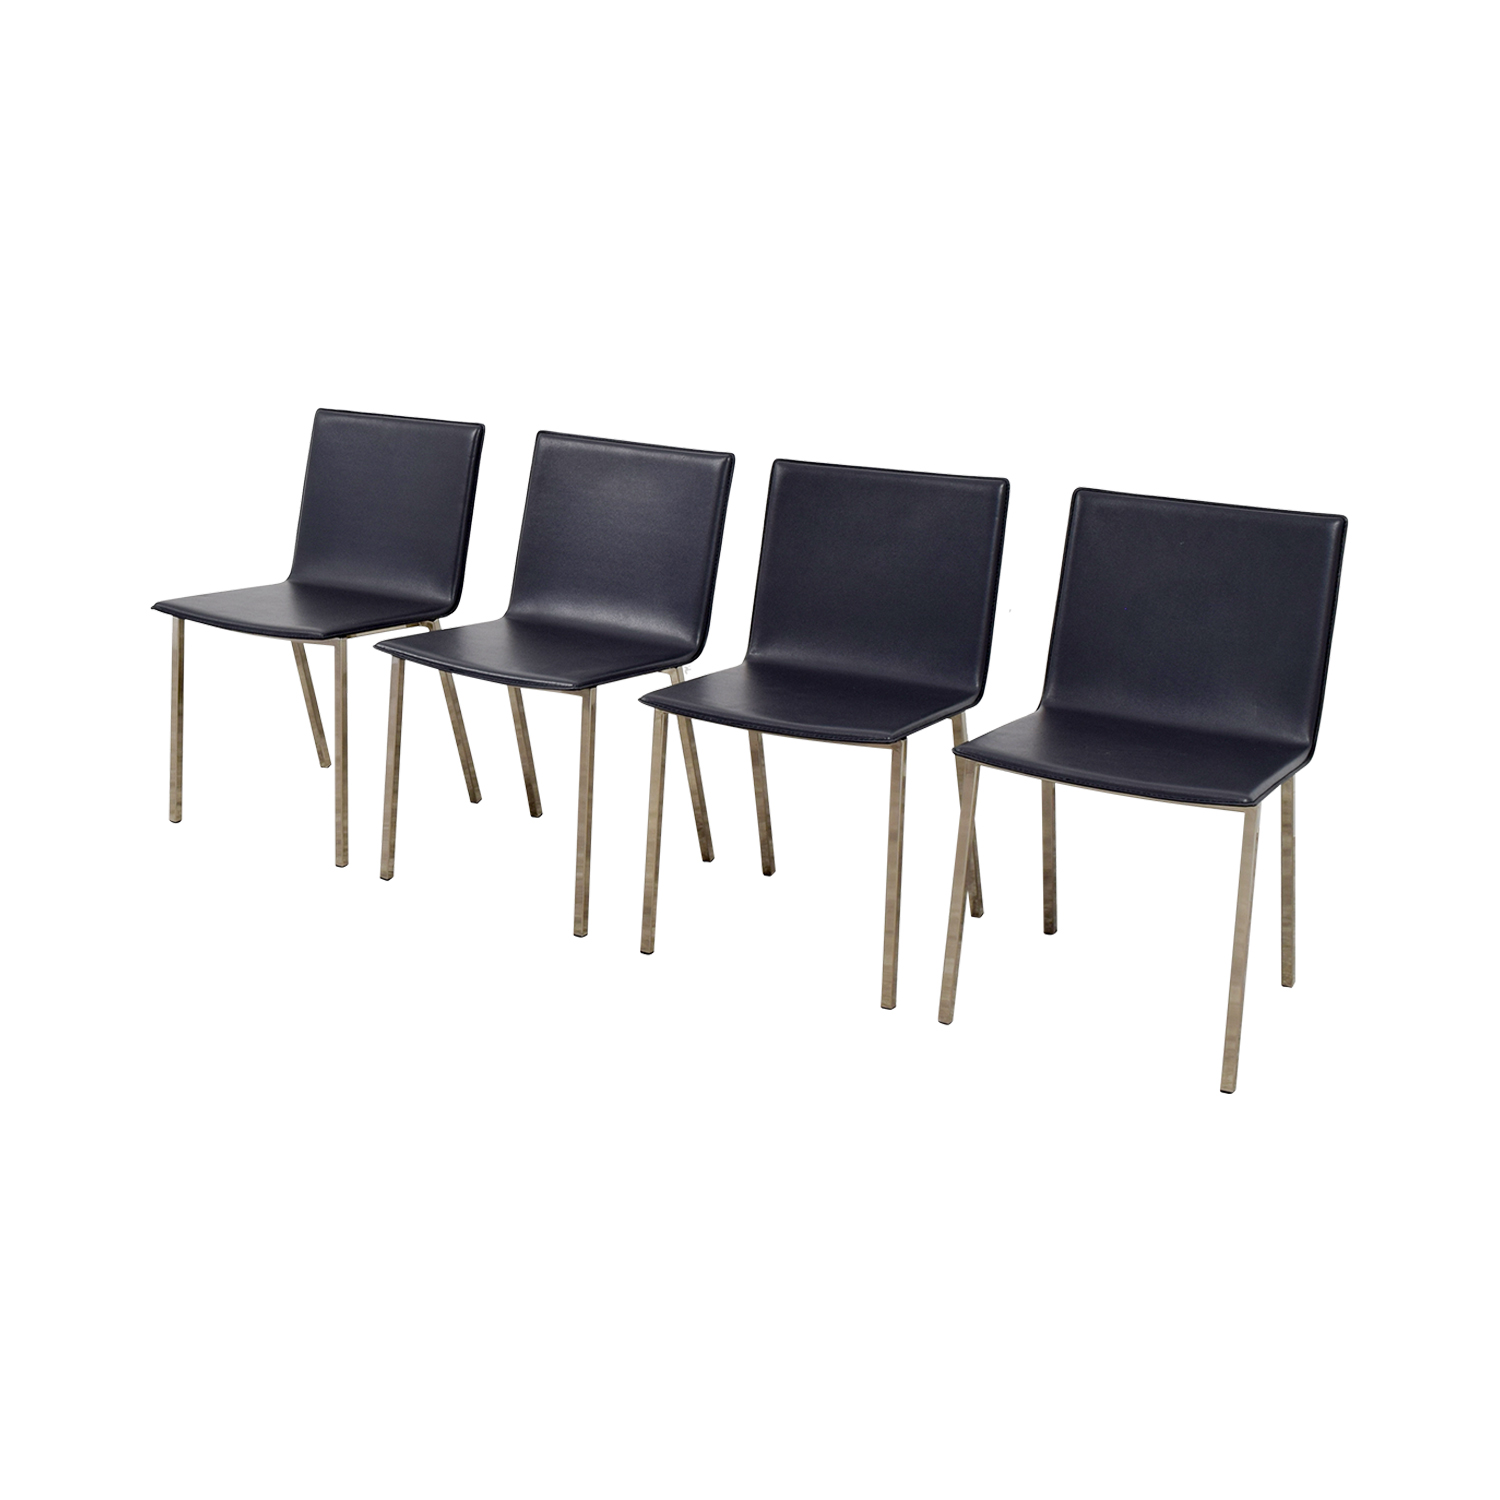 buy CB2 Grey Leather Chairs CB2 Dining Chairs